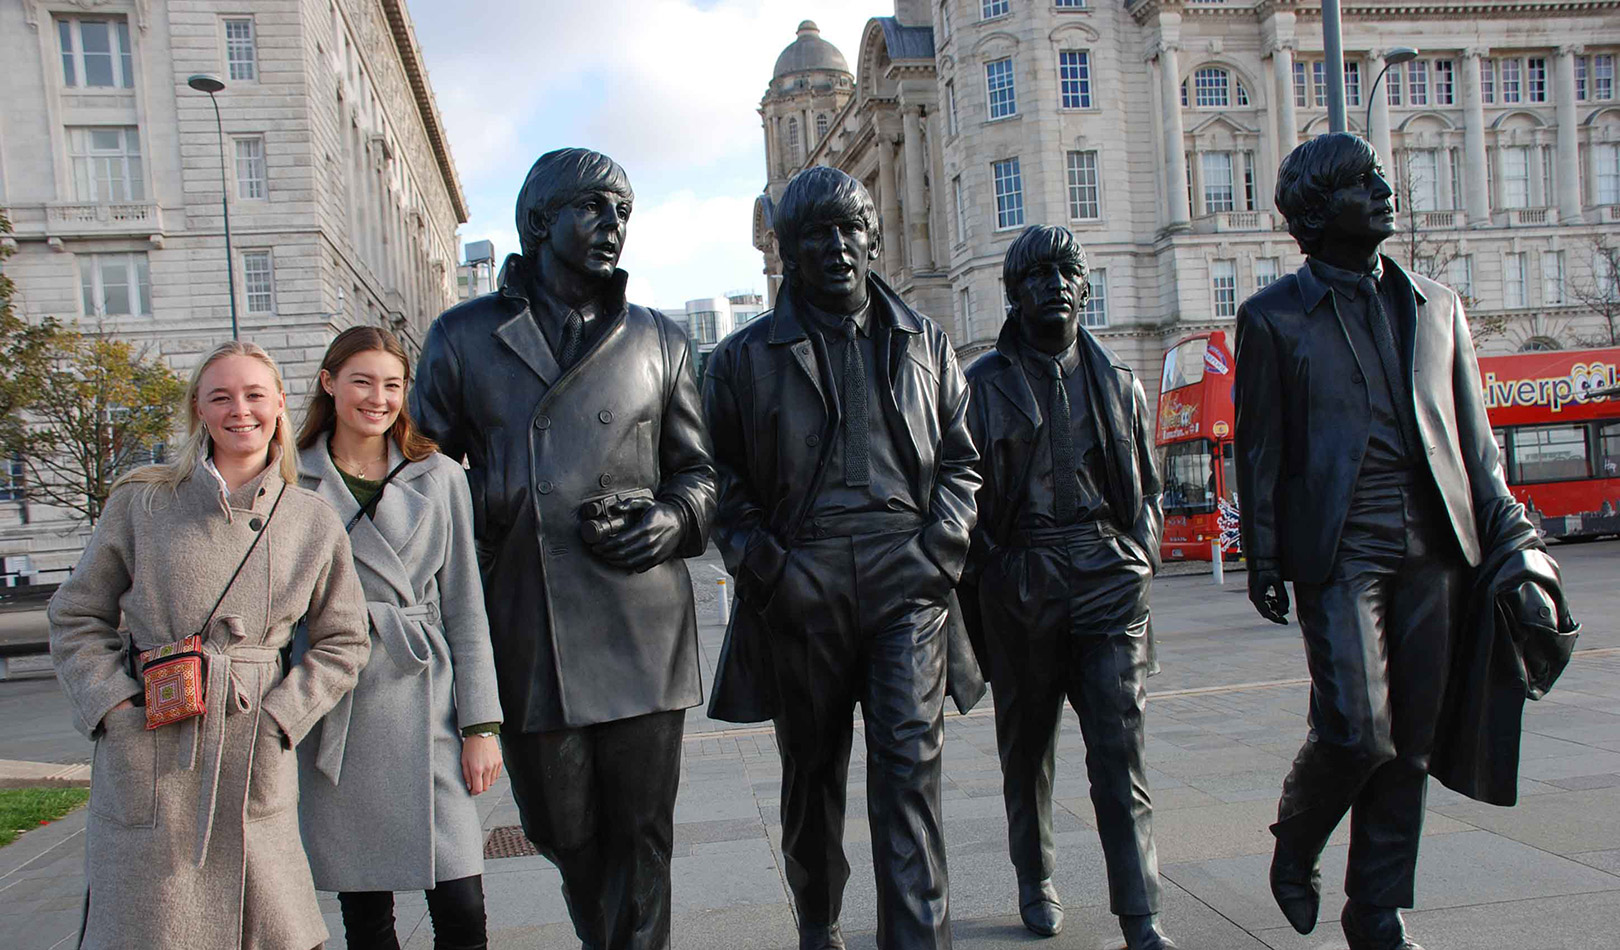 To jenter ved The Beatles statuene I Liverpool.